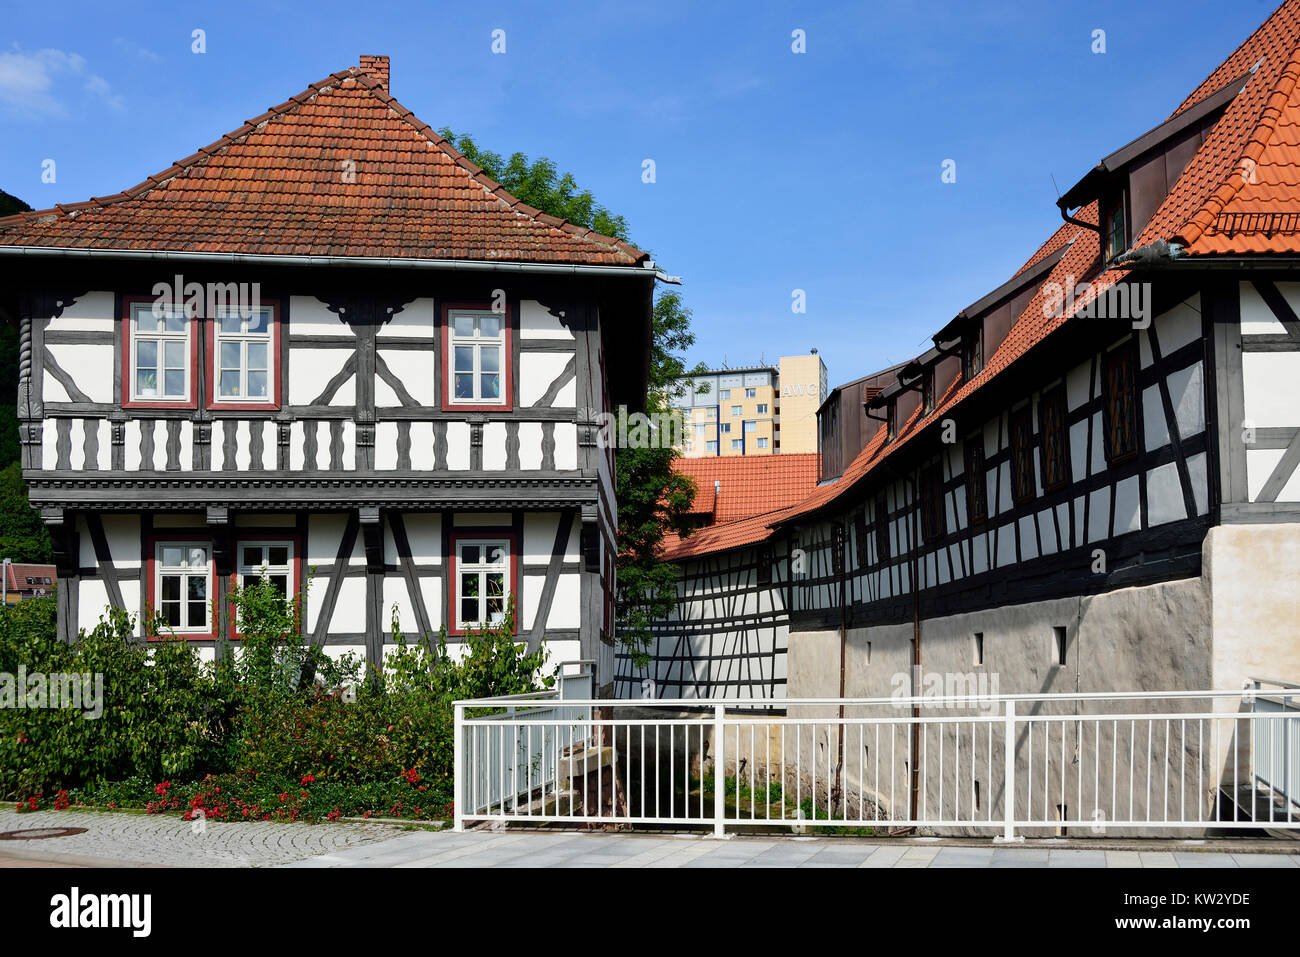 Timber-framed building Klettsches house and malt house, Thuringia, Wallowing, Fachwerkbau Klettsches Haus und Malzhaus, - Stock Image